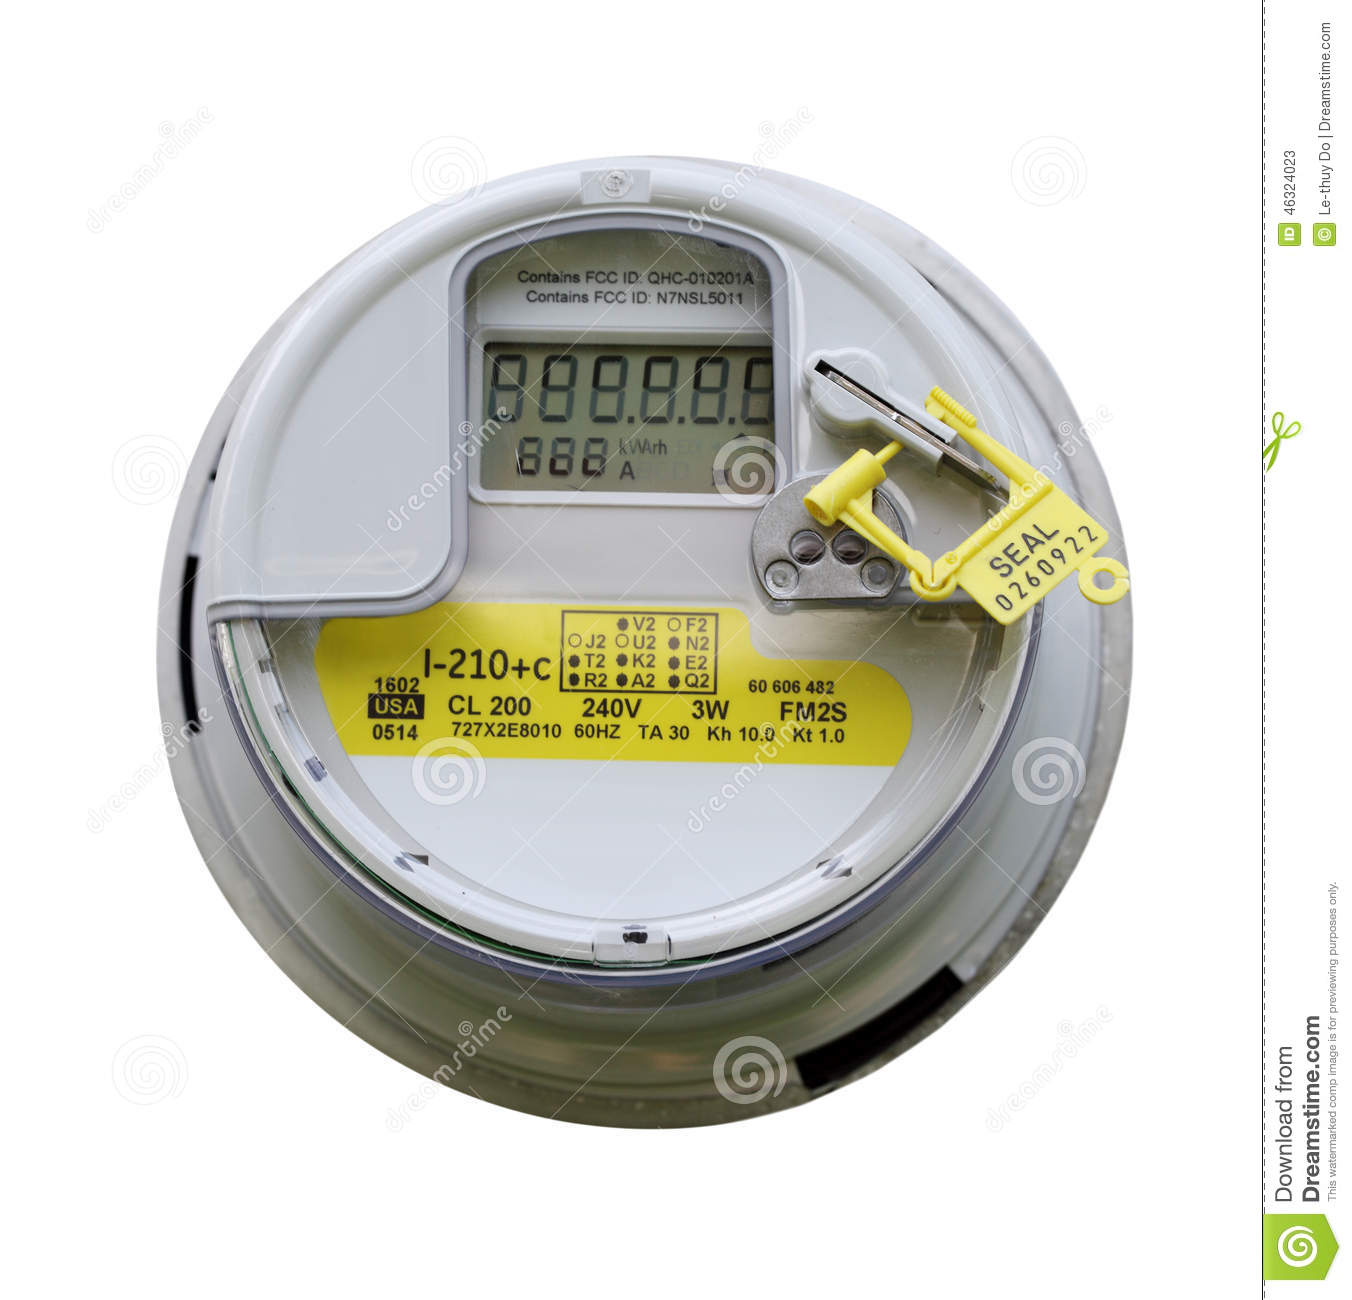 Multifunction Meter Front View : Electric meter stock photo image